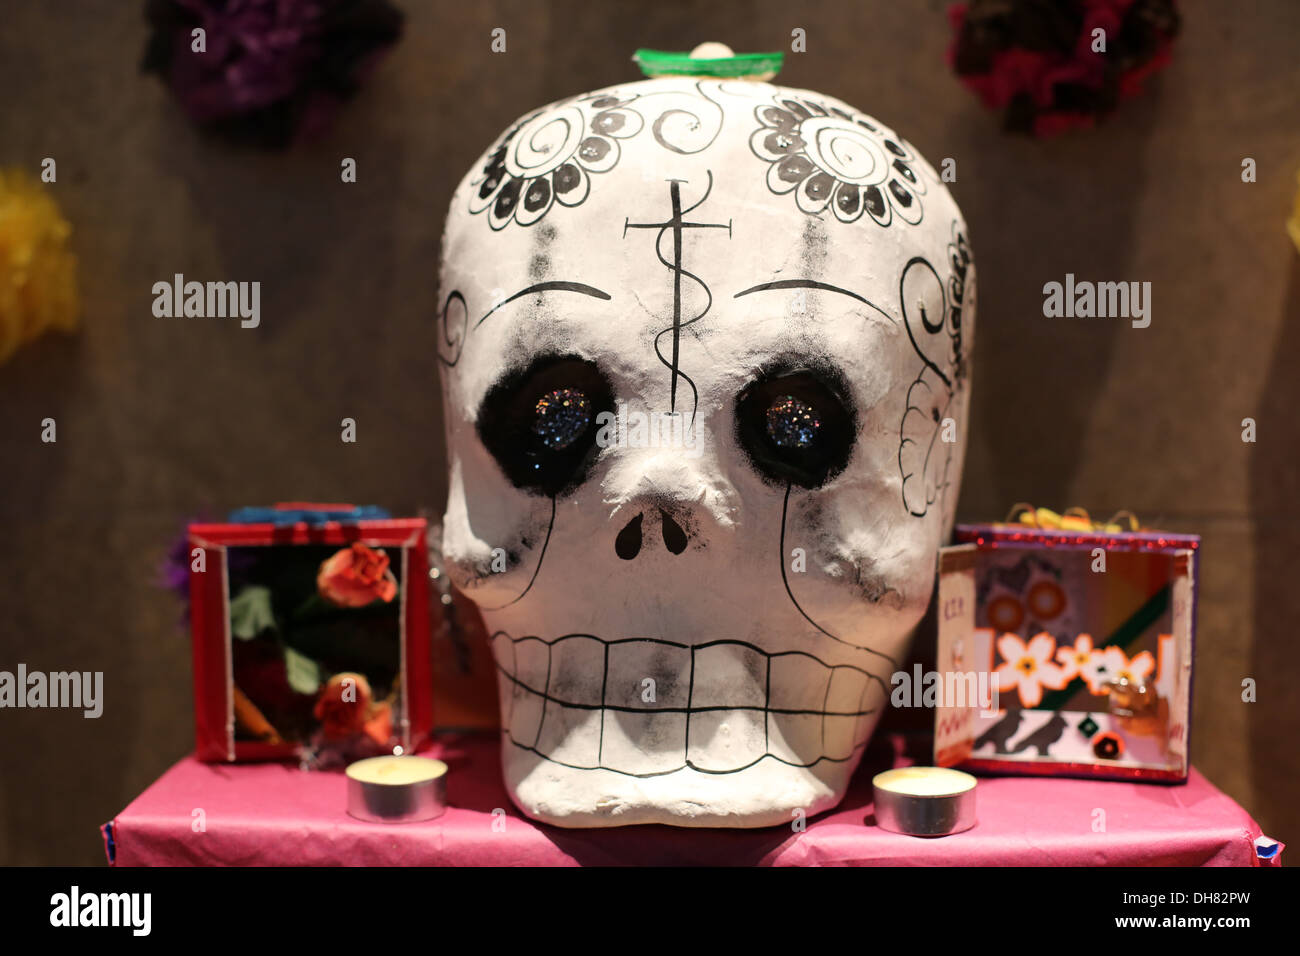 A papier mache skull and other decorations on an alter for day of the dead. - Stock Image